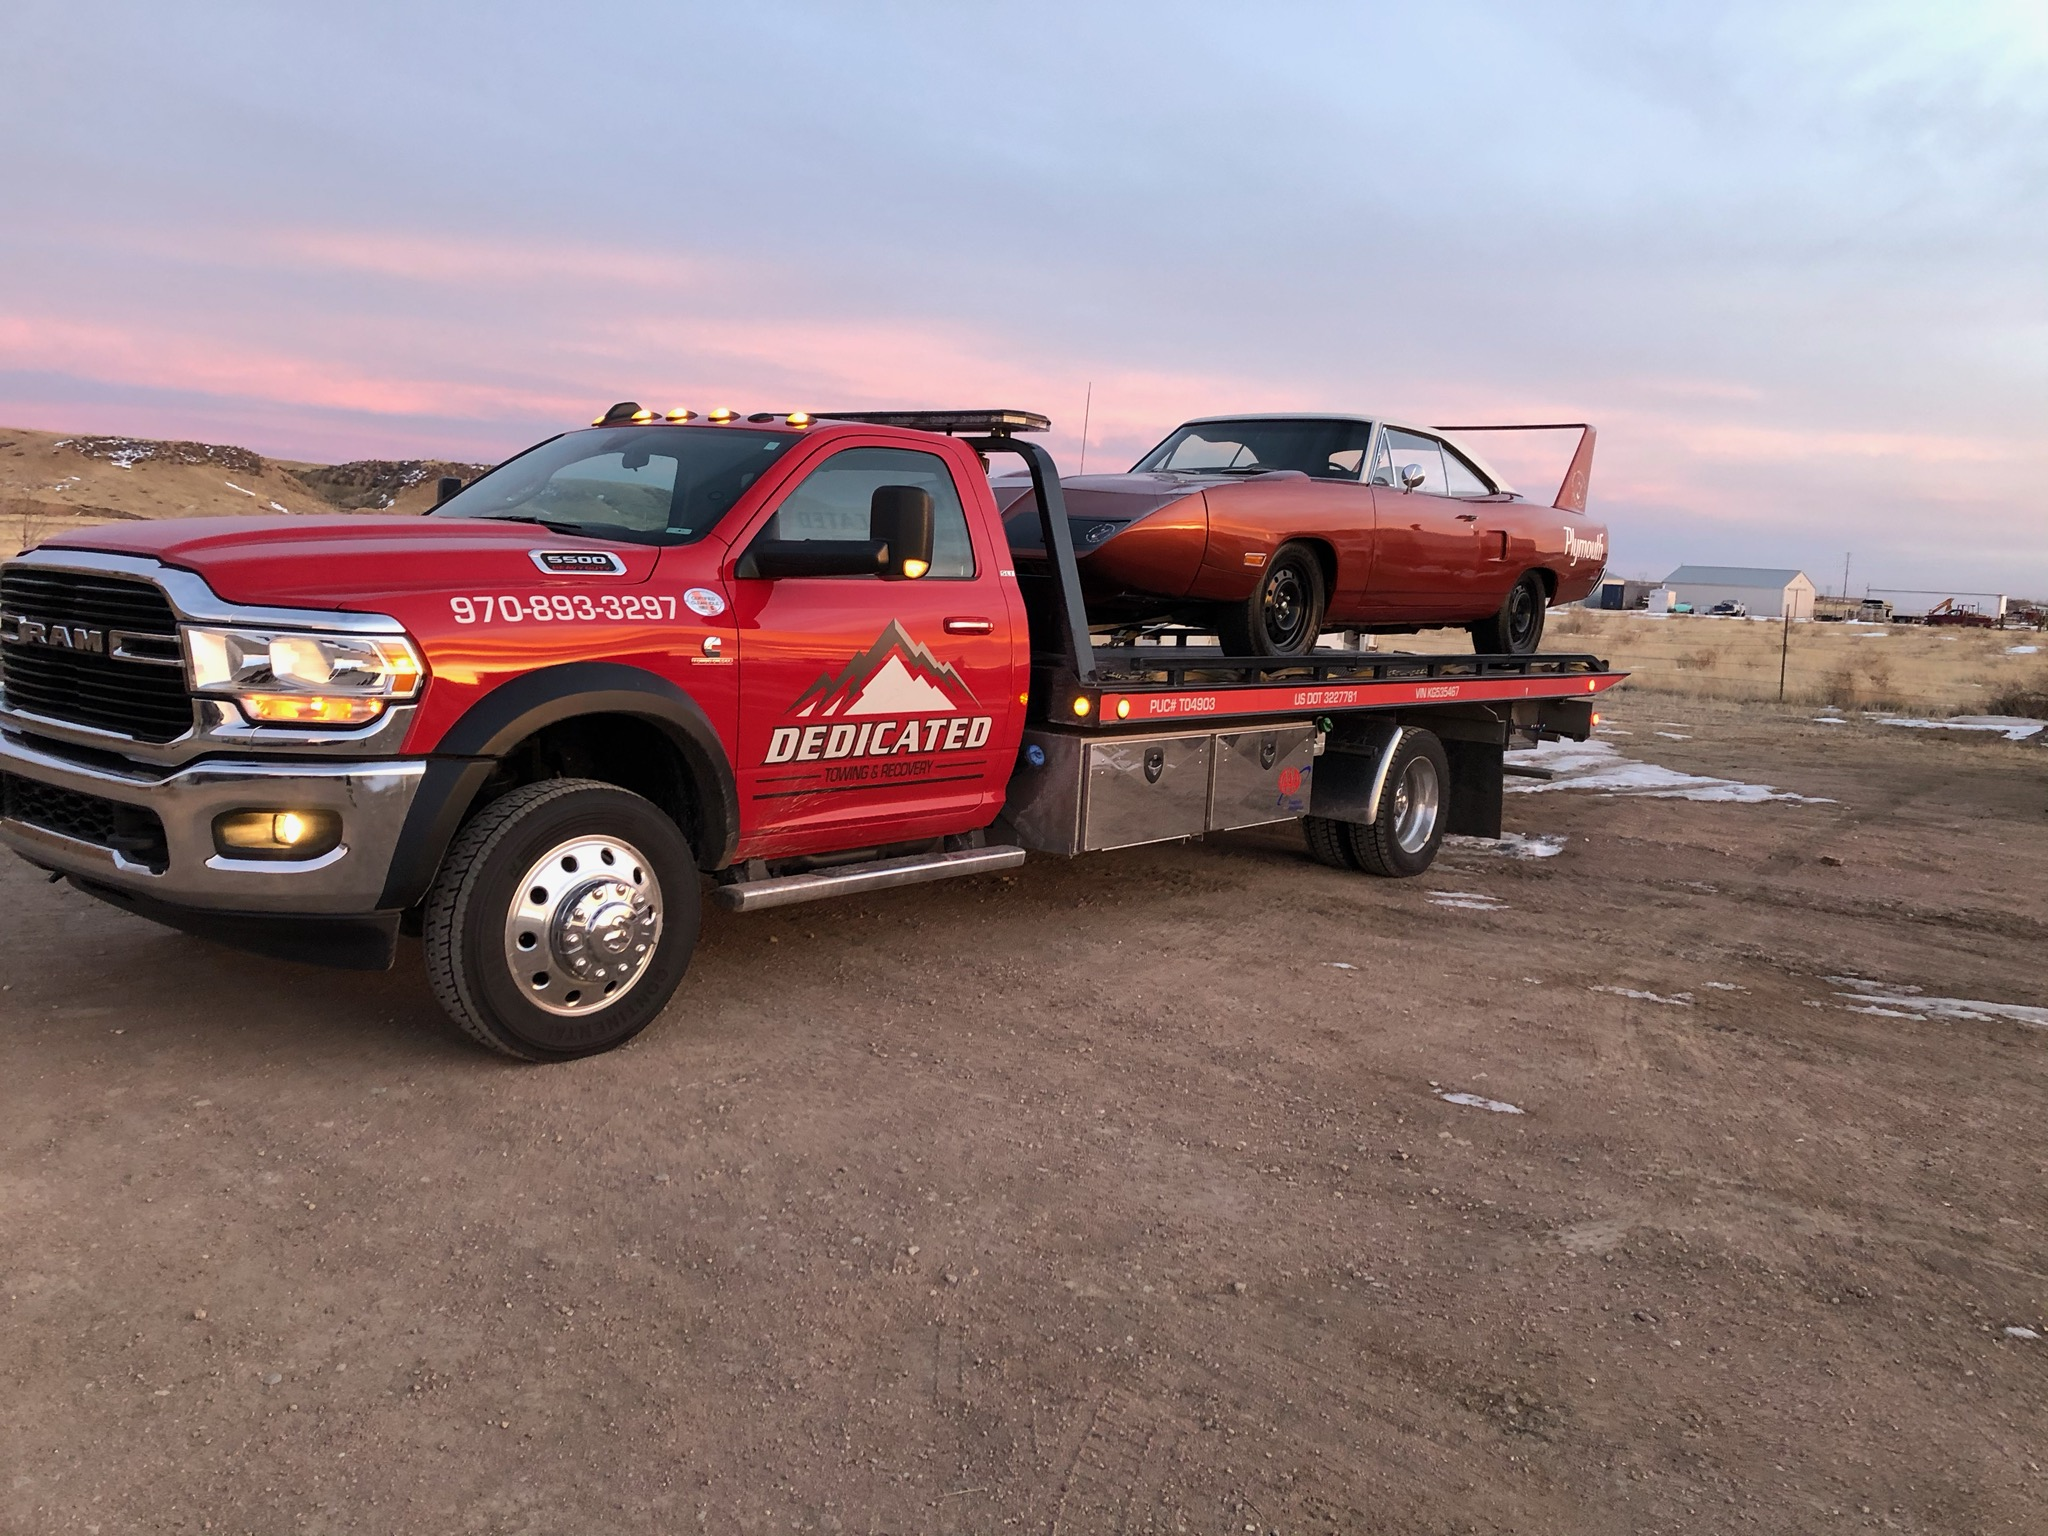 Dedicated Towing And Recovery (2)